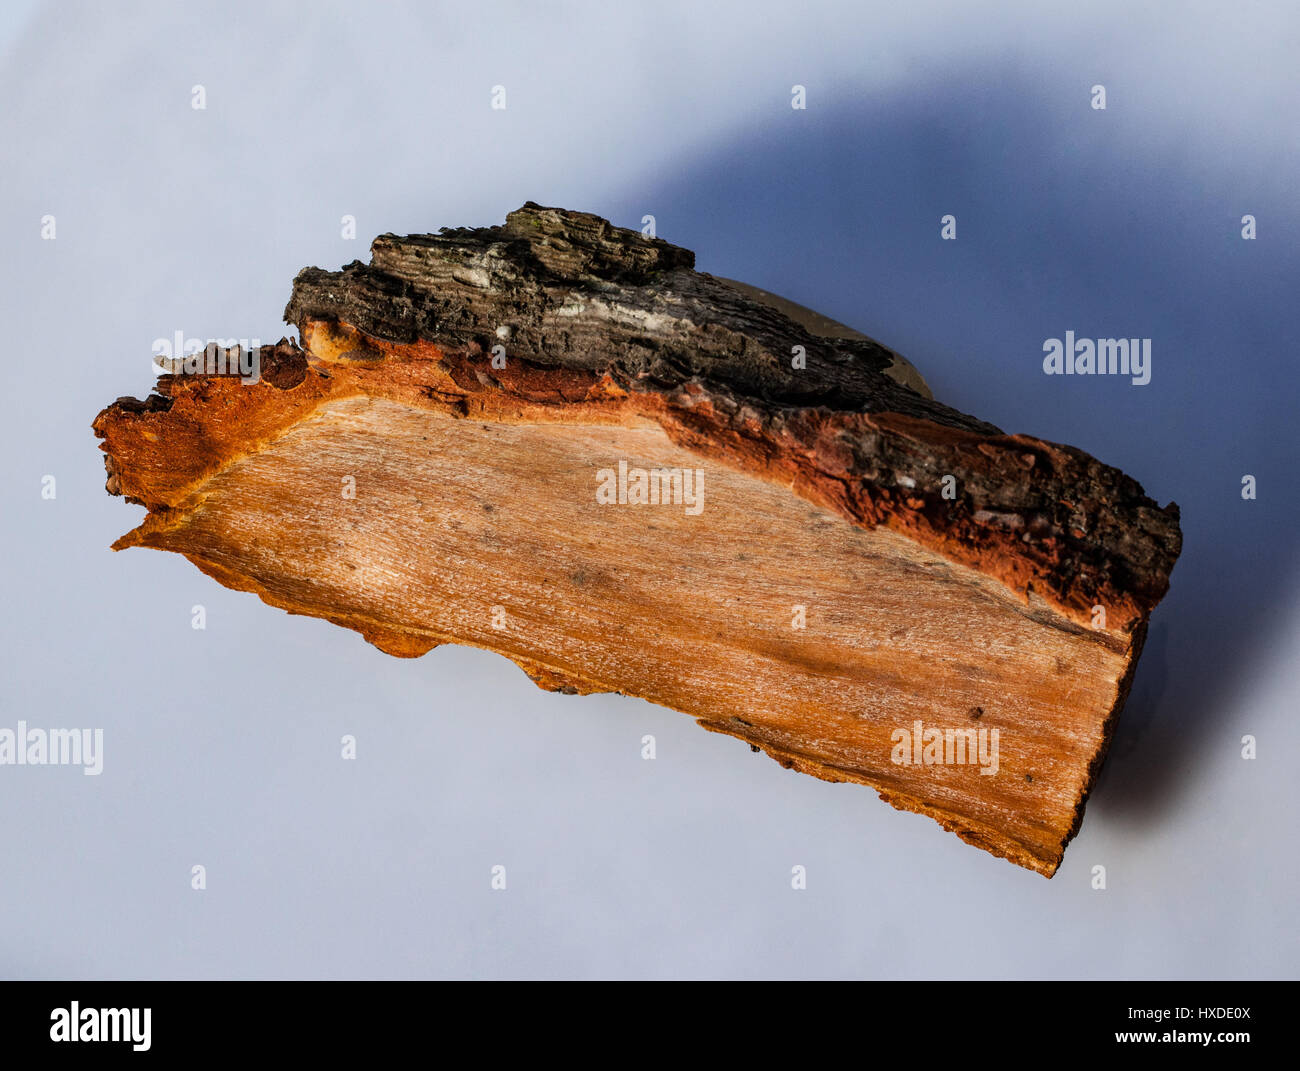 Close-up view of pine tree trunk showing bark and growth rings - Stock Image